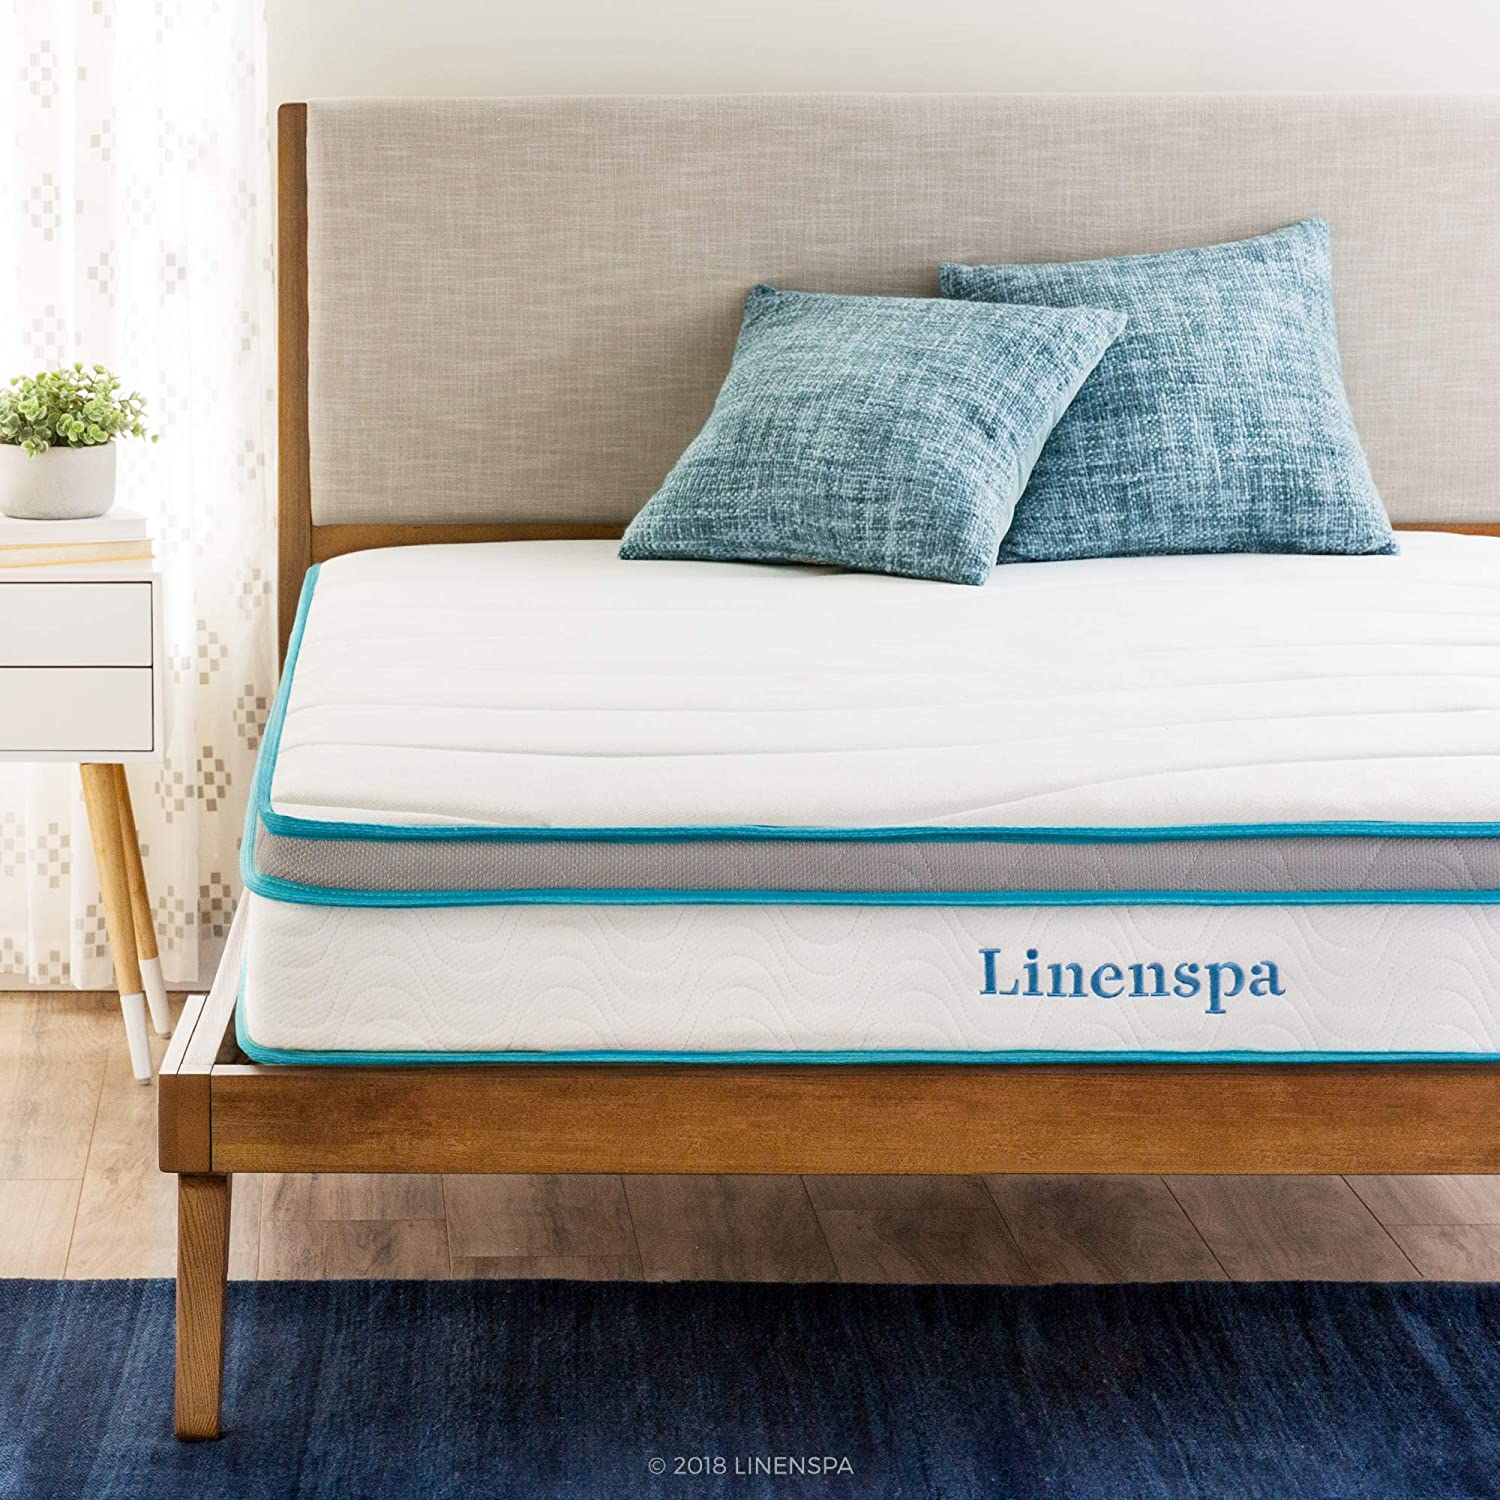 "LineSpa 8"" Memory Foam and Innerspring Hybrid Mattress, Twin"